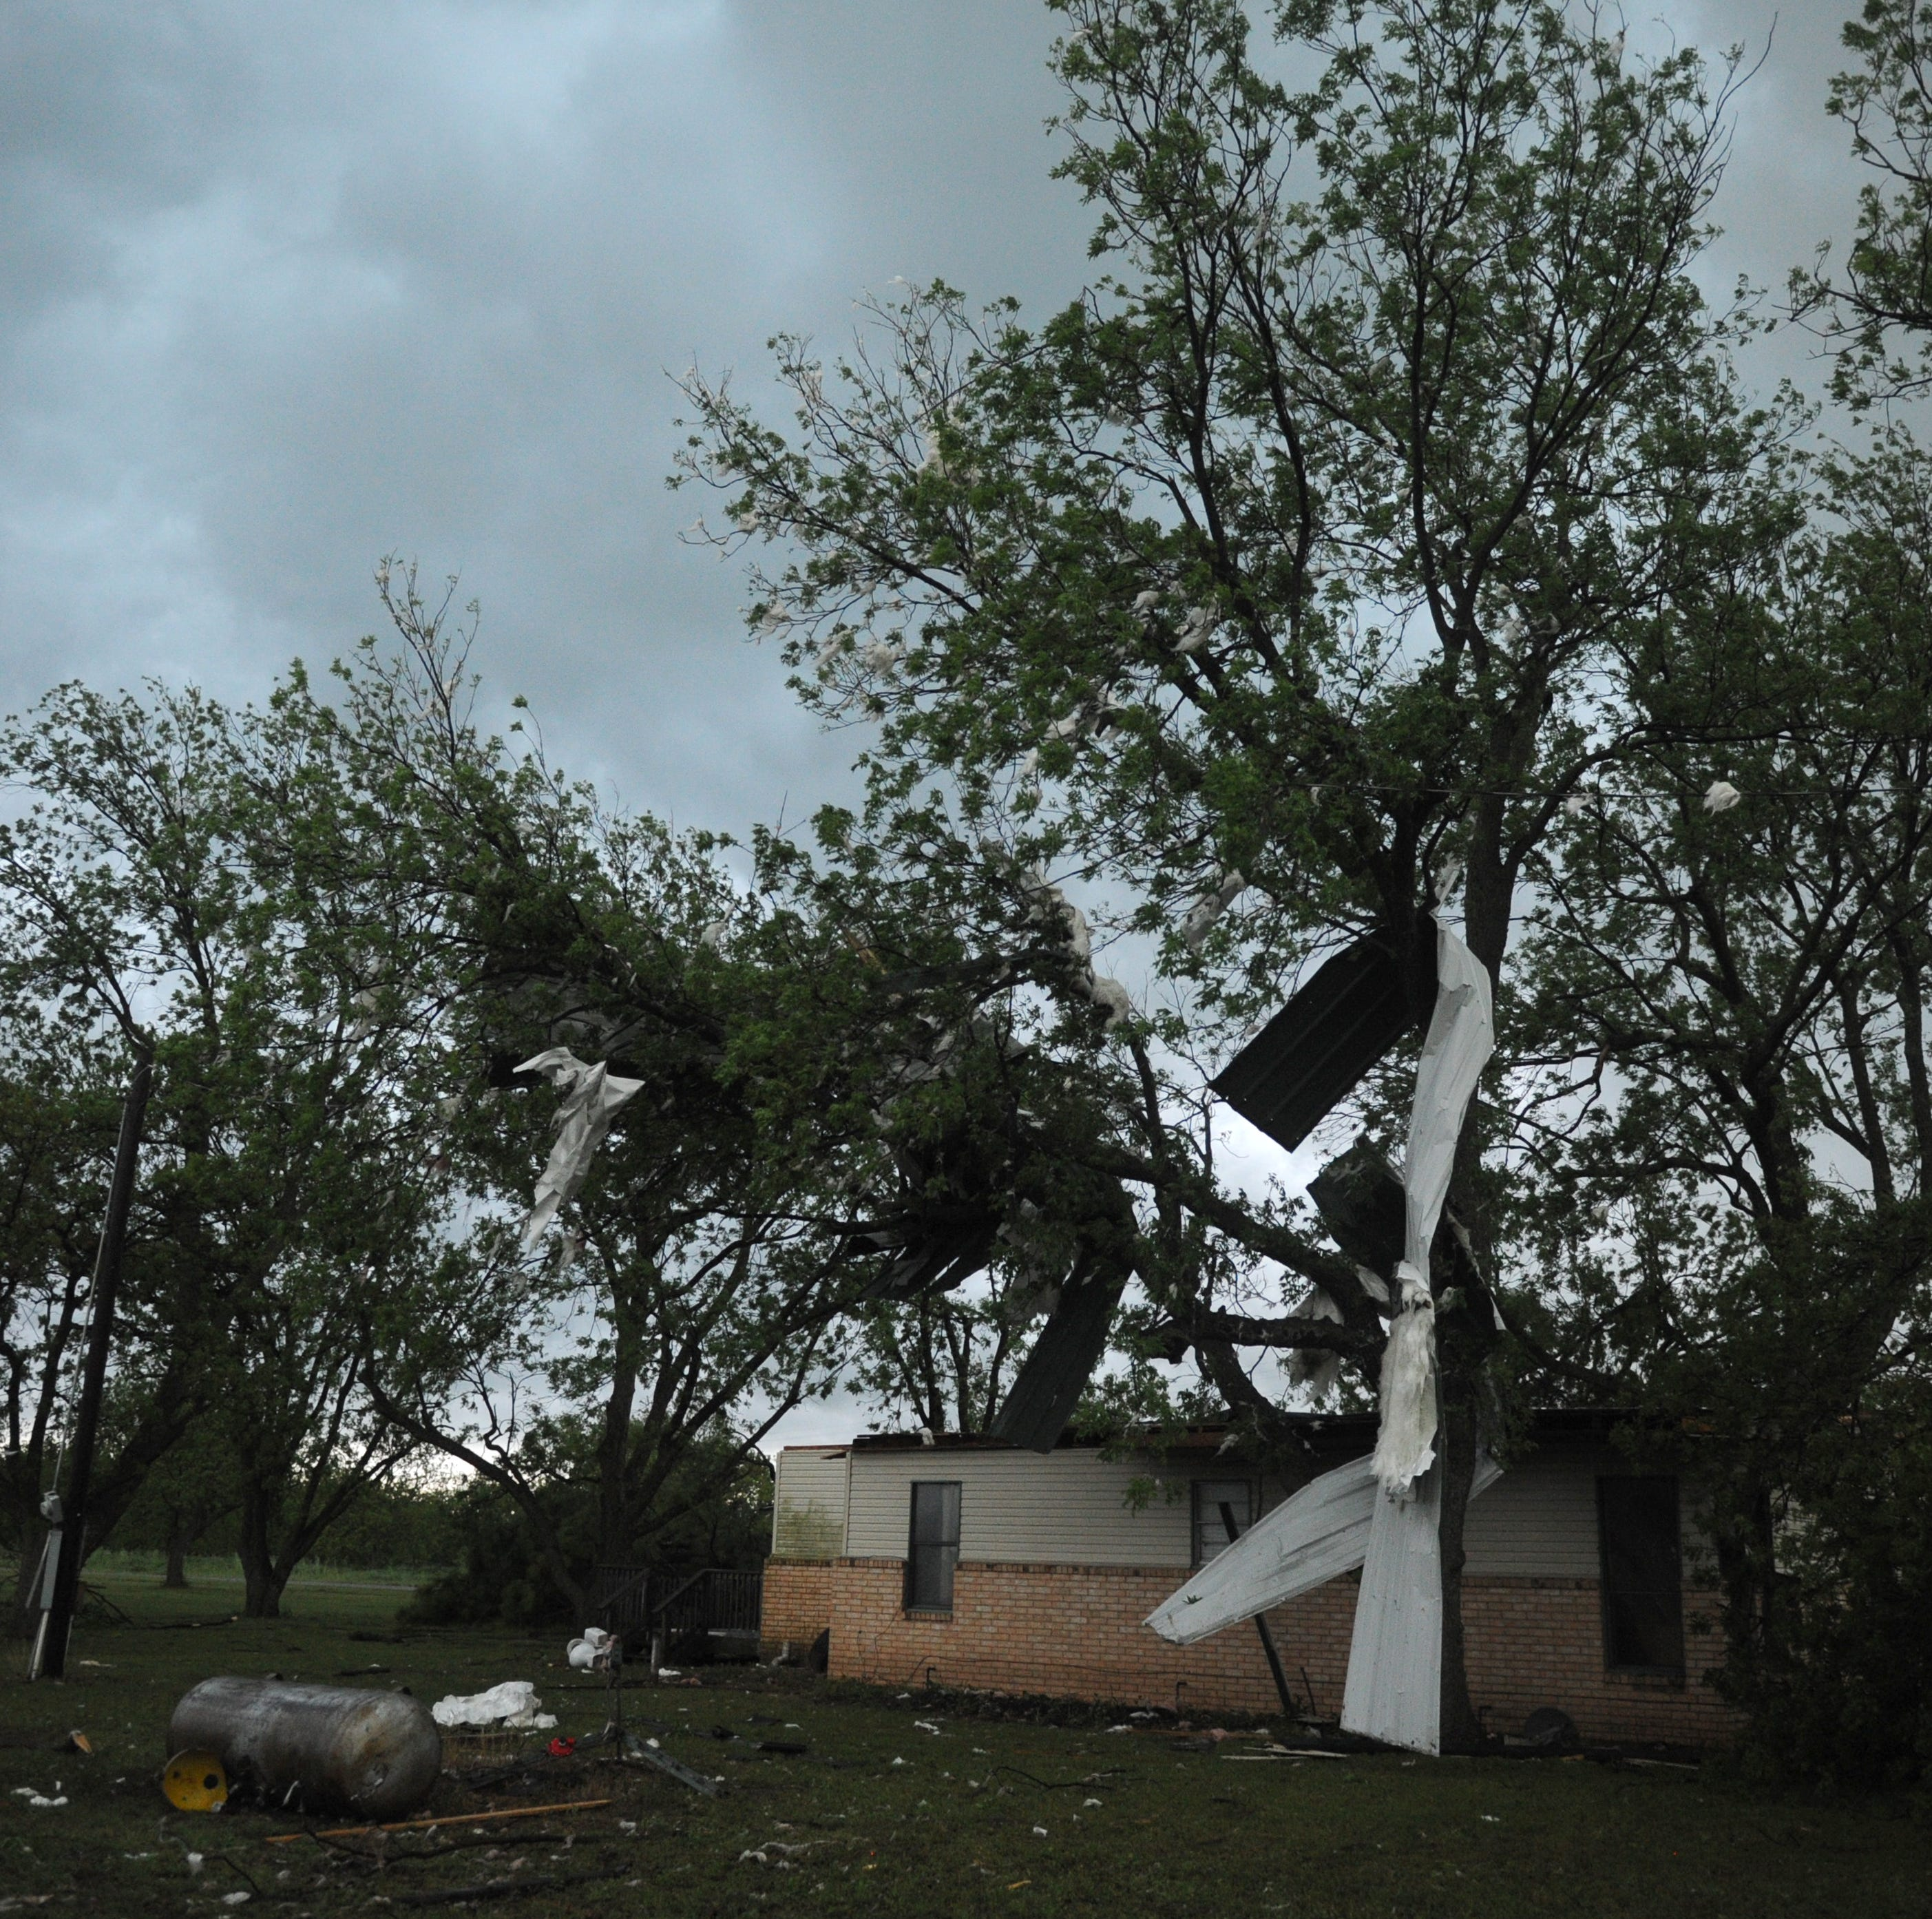 Wednesday storms producing tornadoes in North Texas